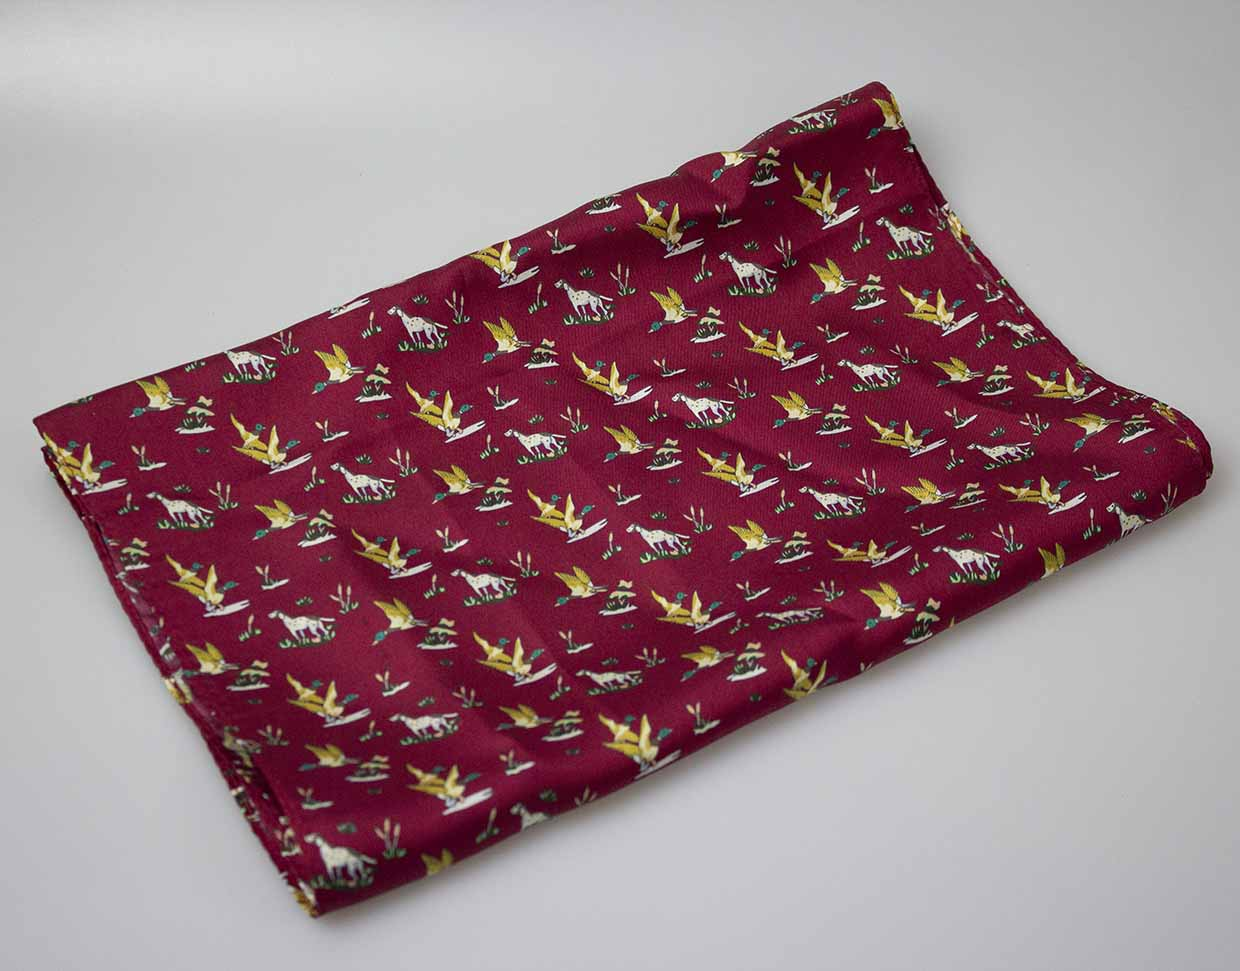 GT3 - Silk Scarf - WINE - Oxford Blue